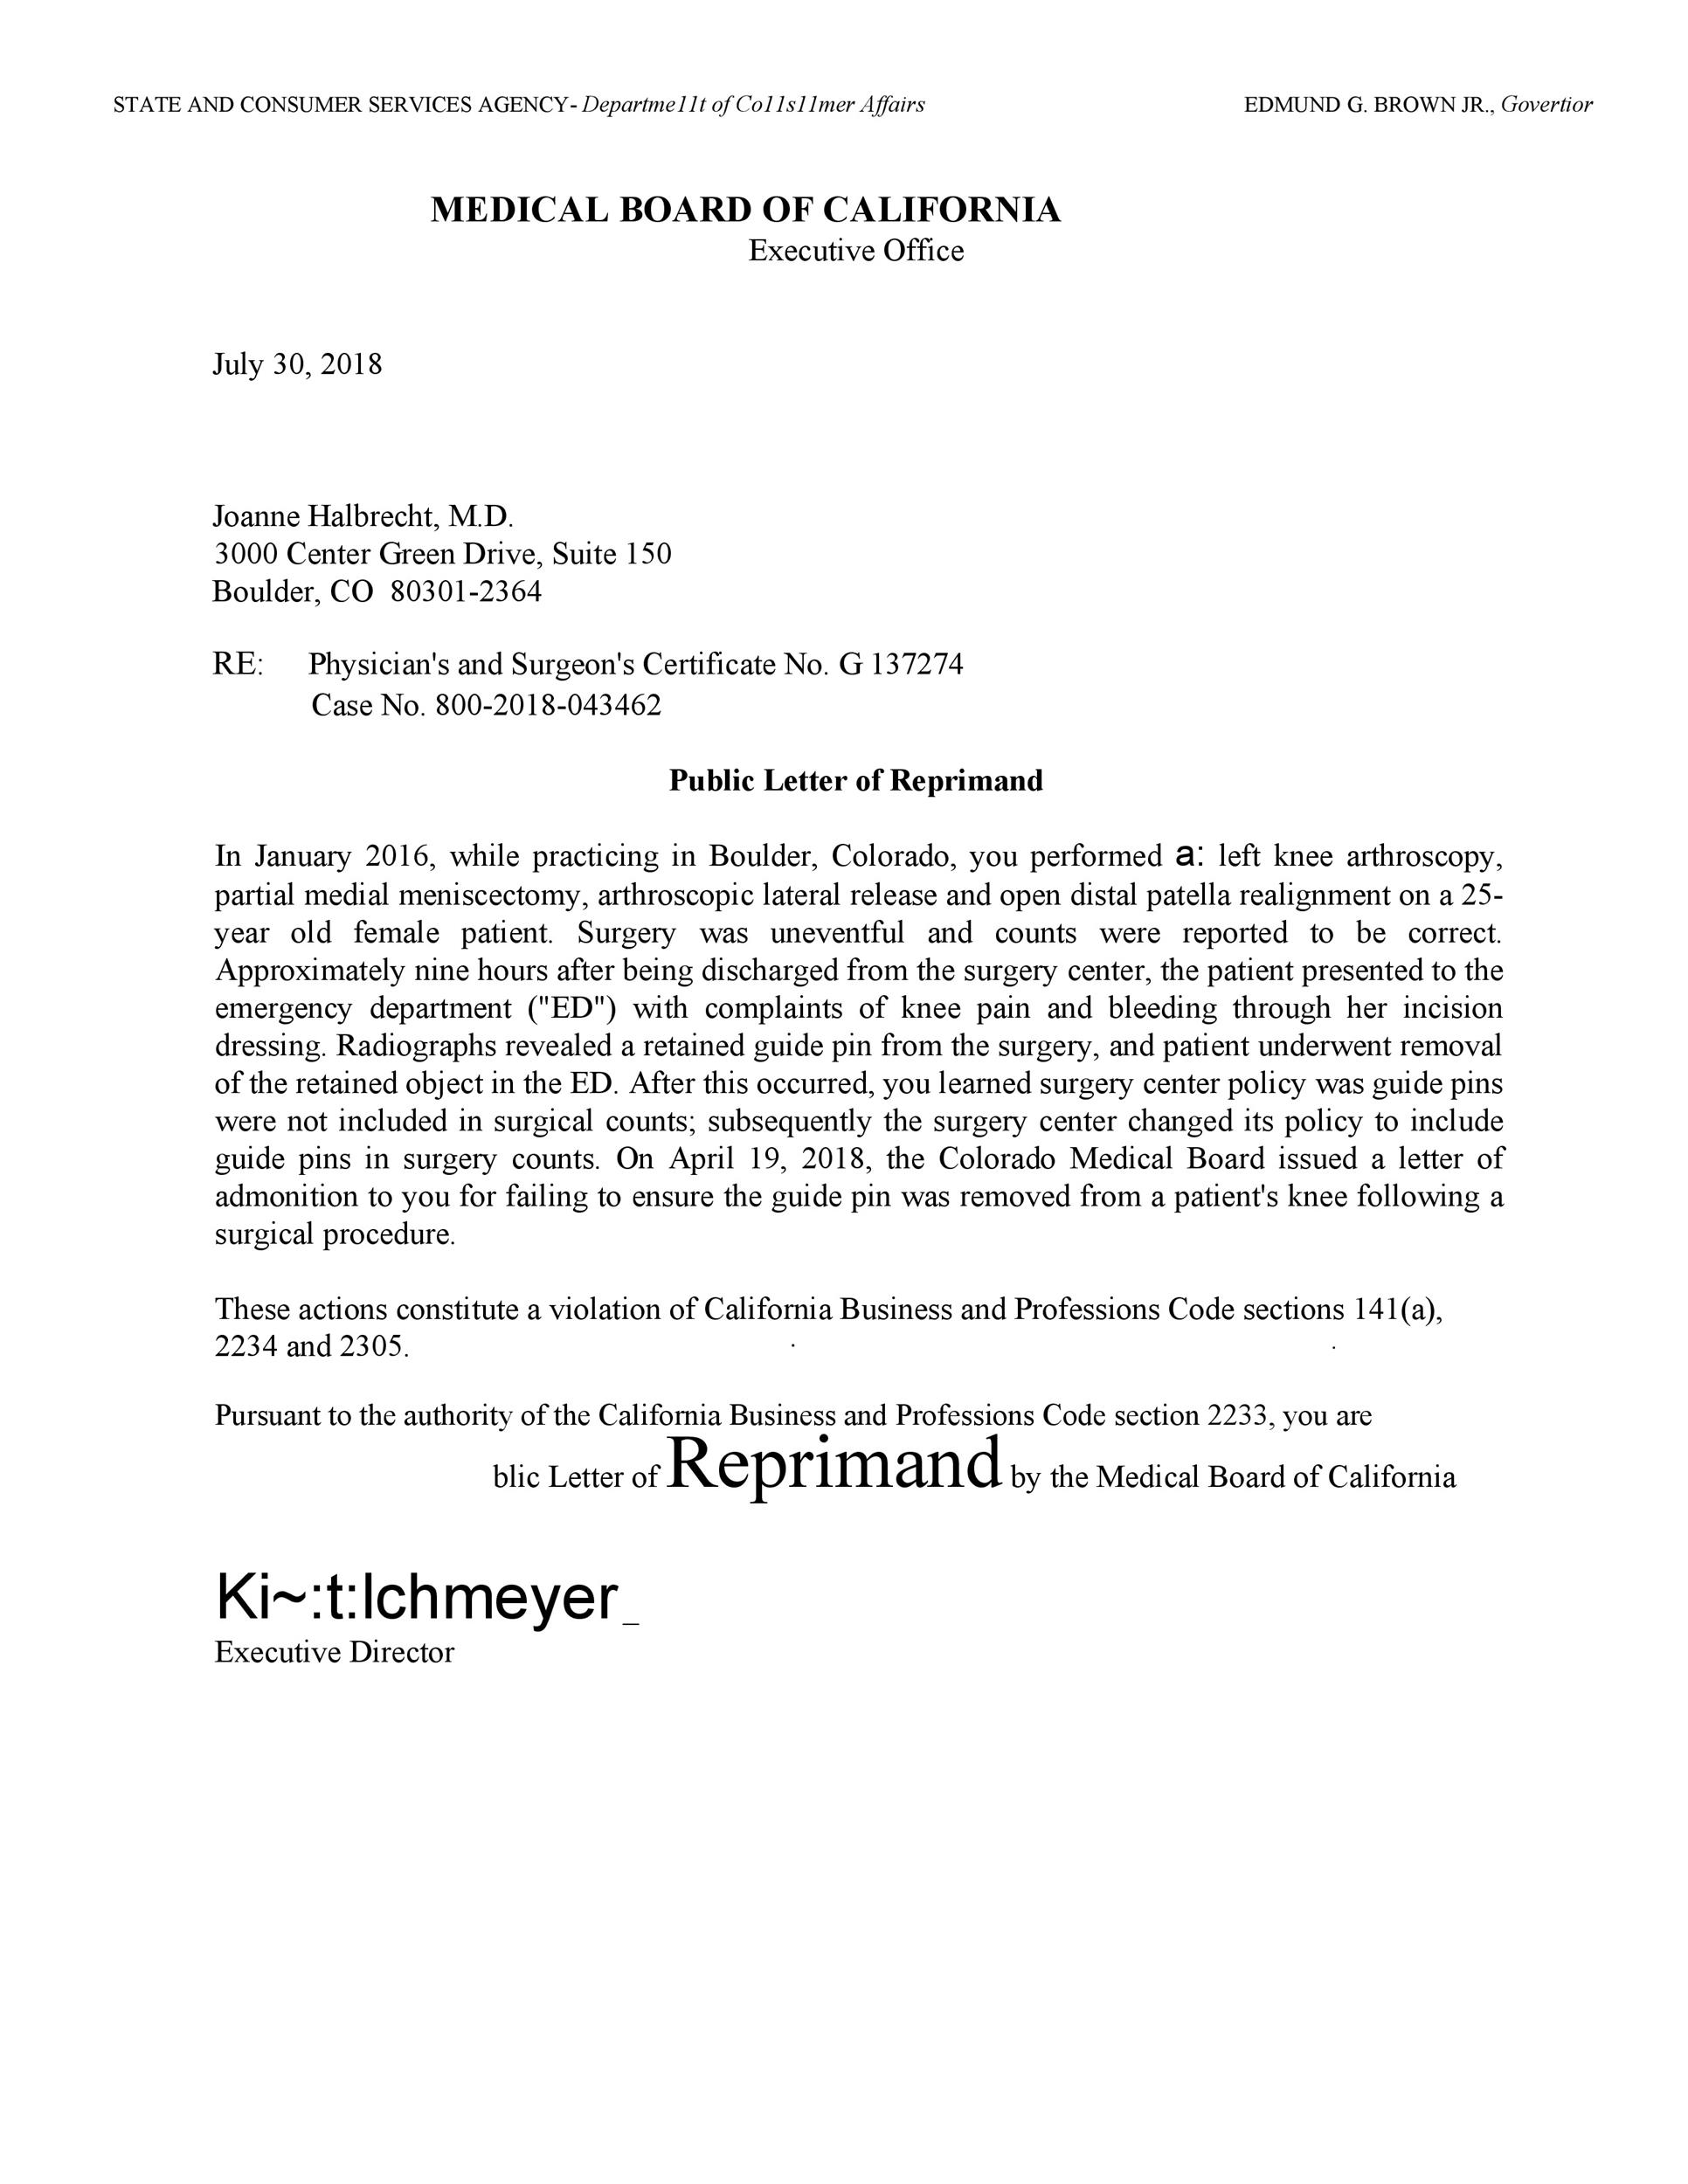 Sample Letter Of Reprimand For Misconduct from templatelab.com